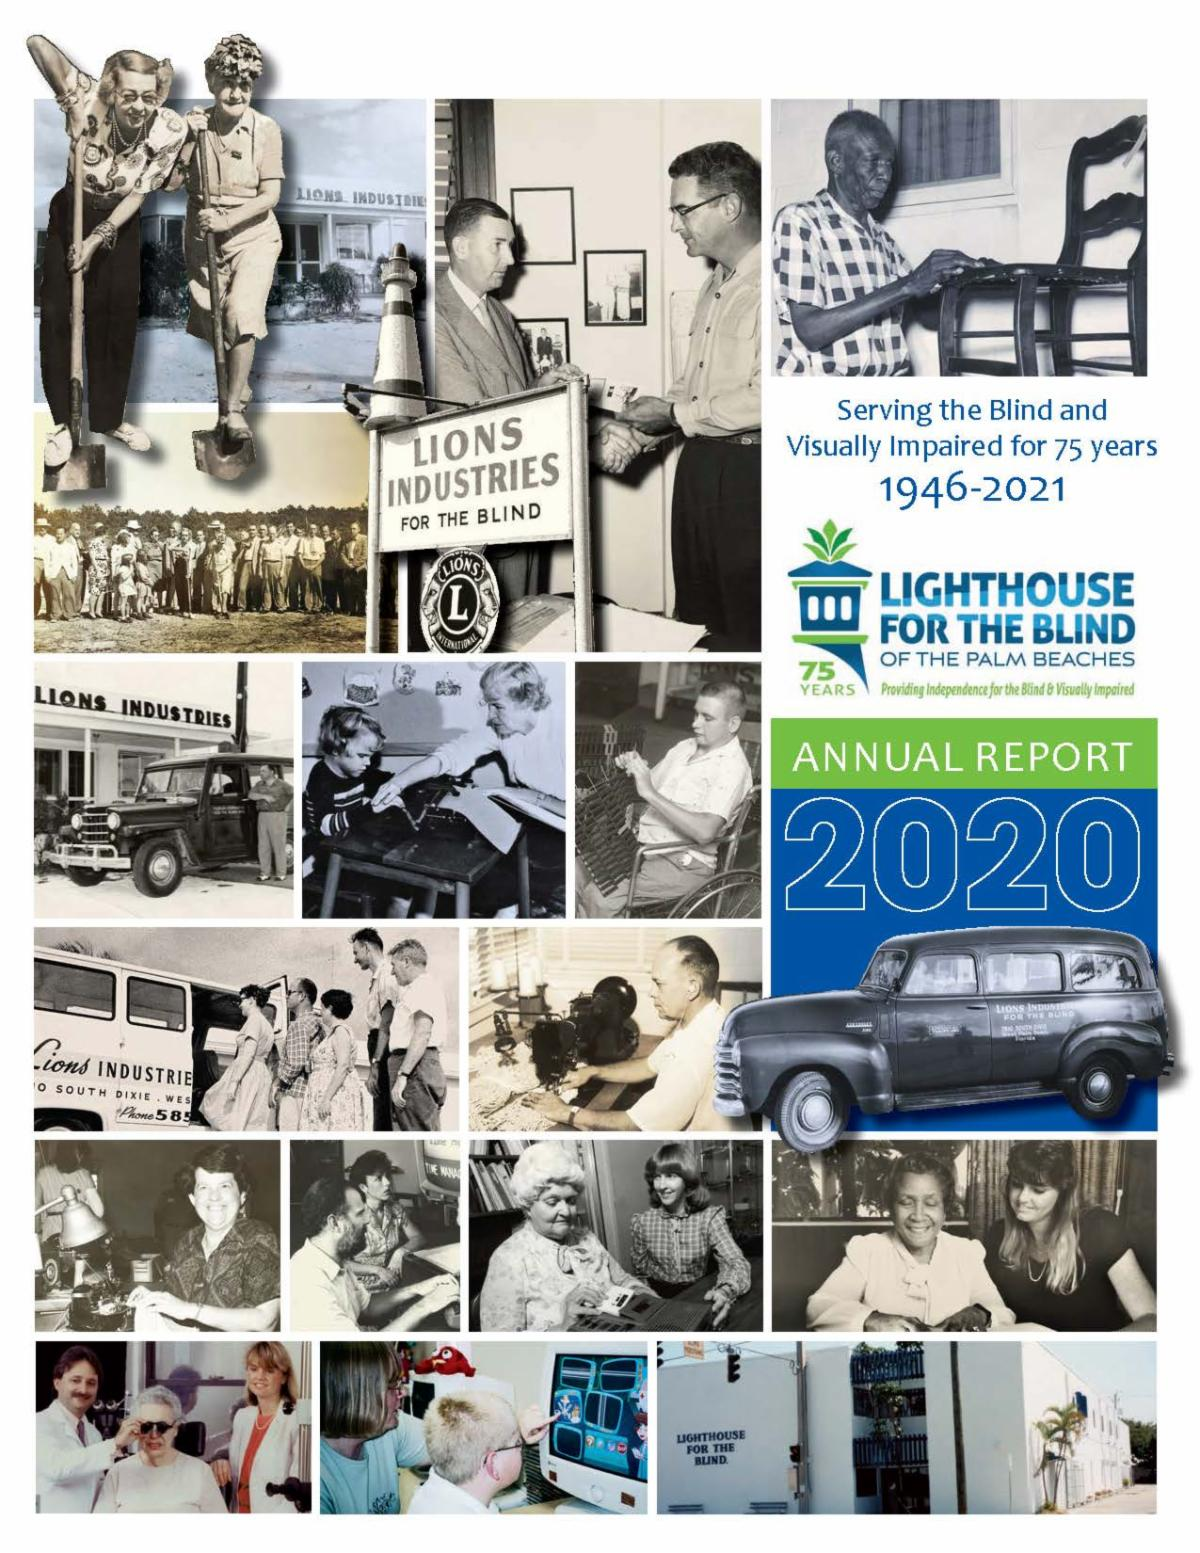 Front Cover of Lighthouse Annual Report